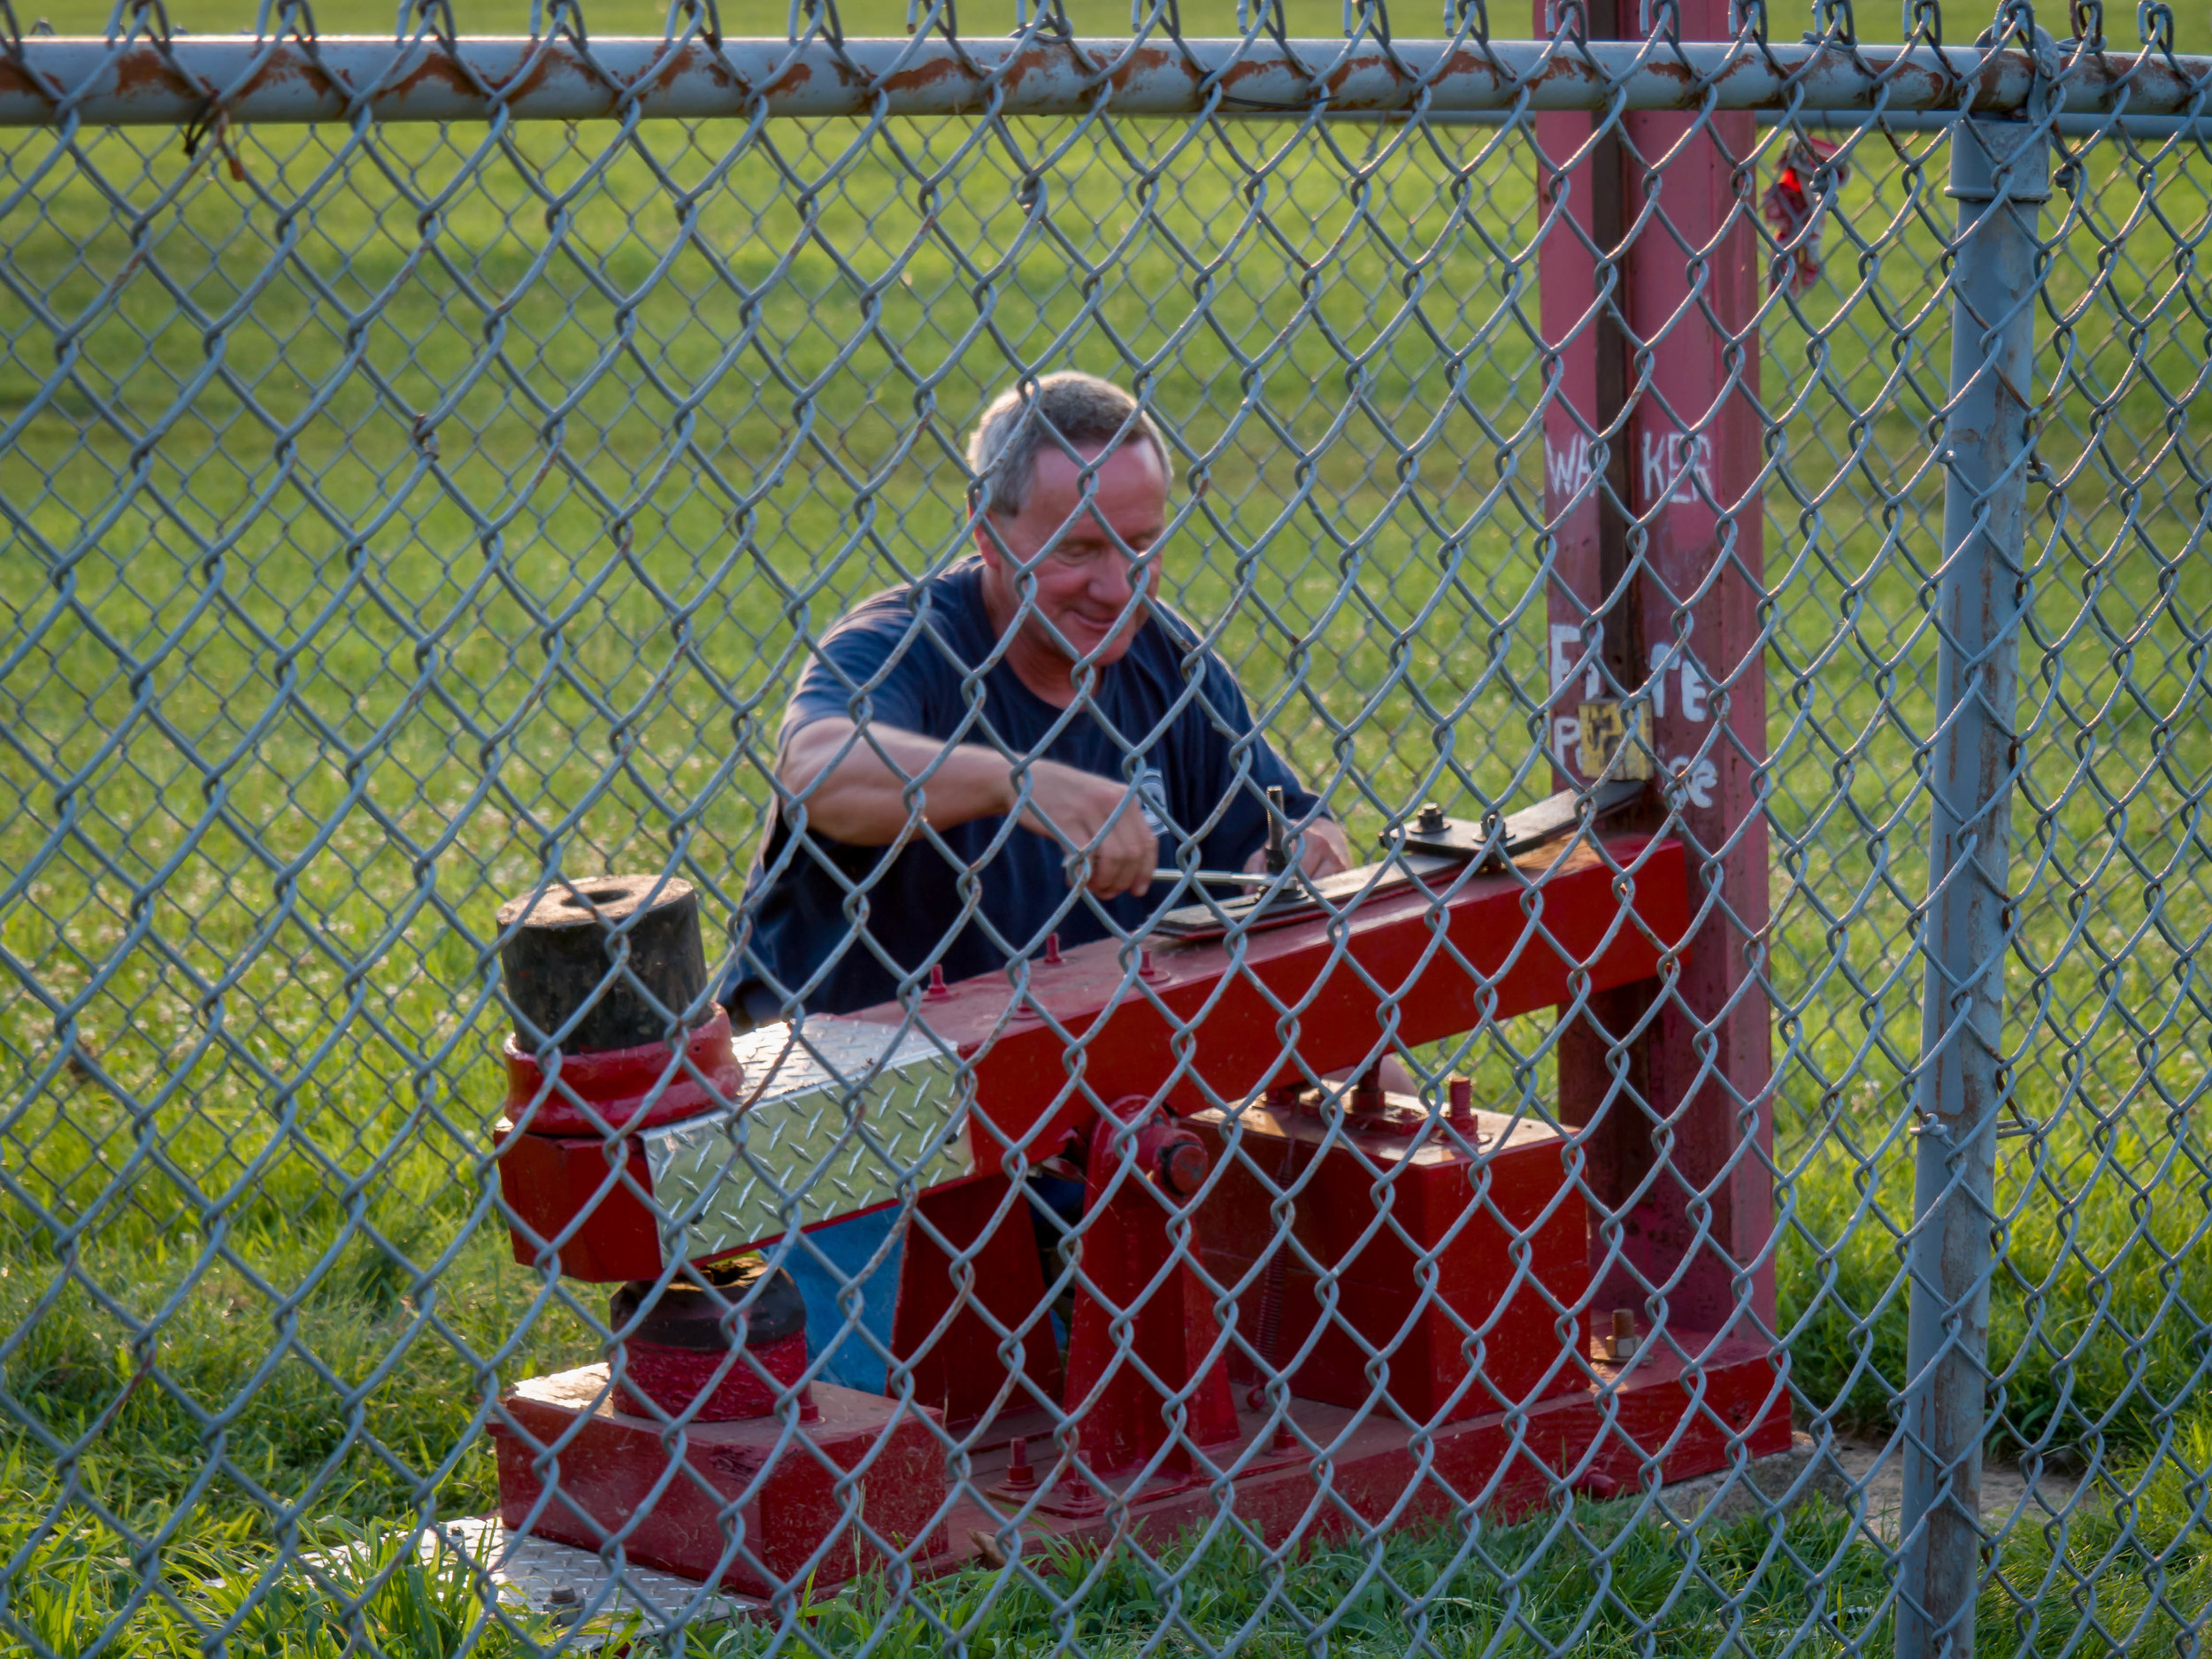 30 - 2018 Carnival Clean-up - 20180710 - untitled-7108879.jpg